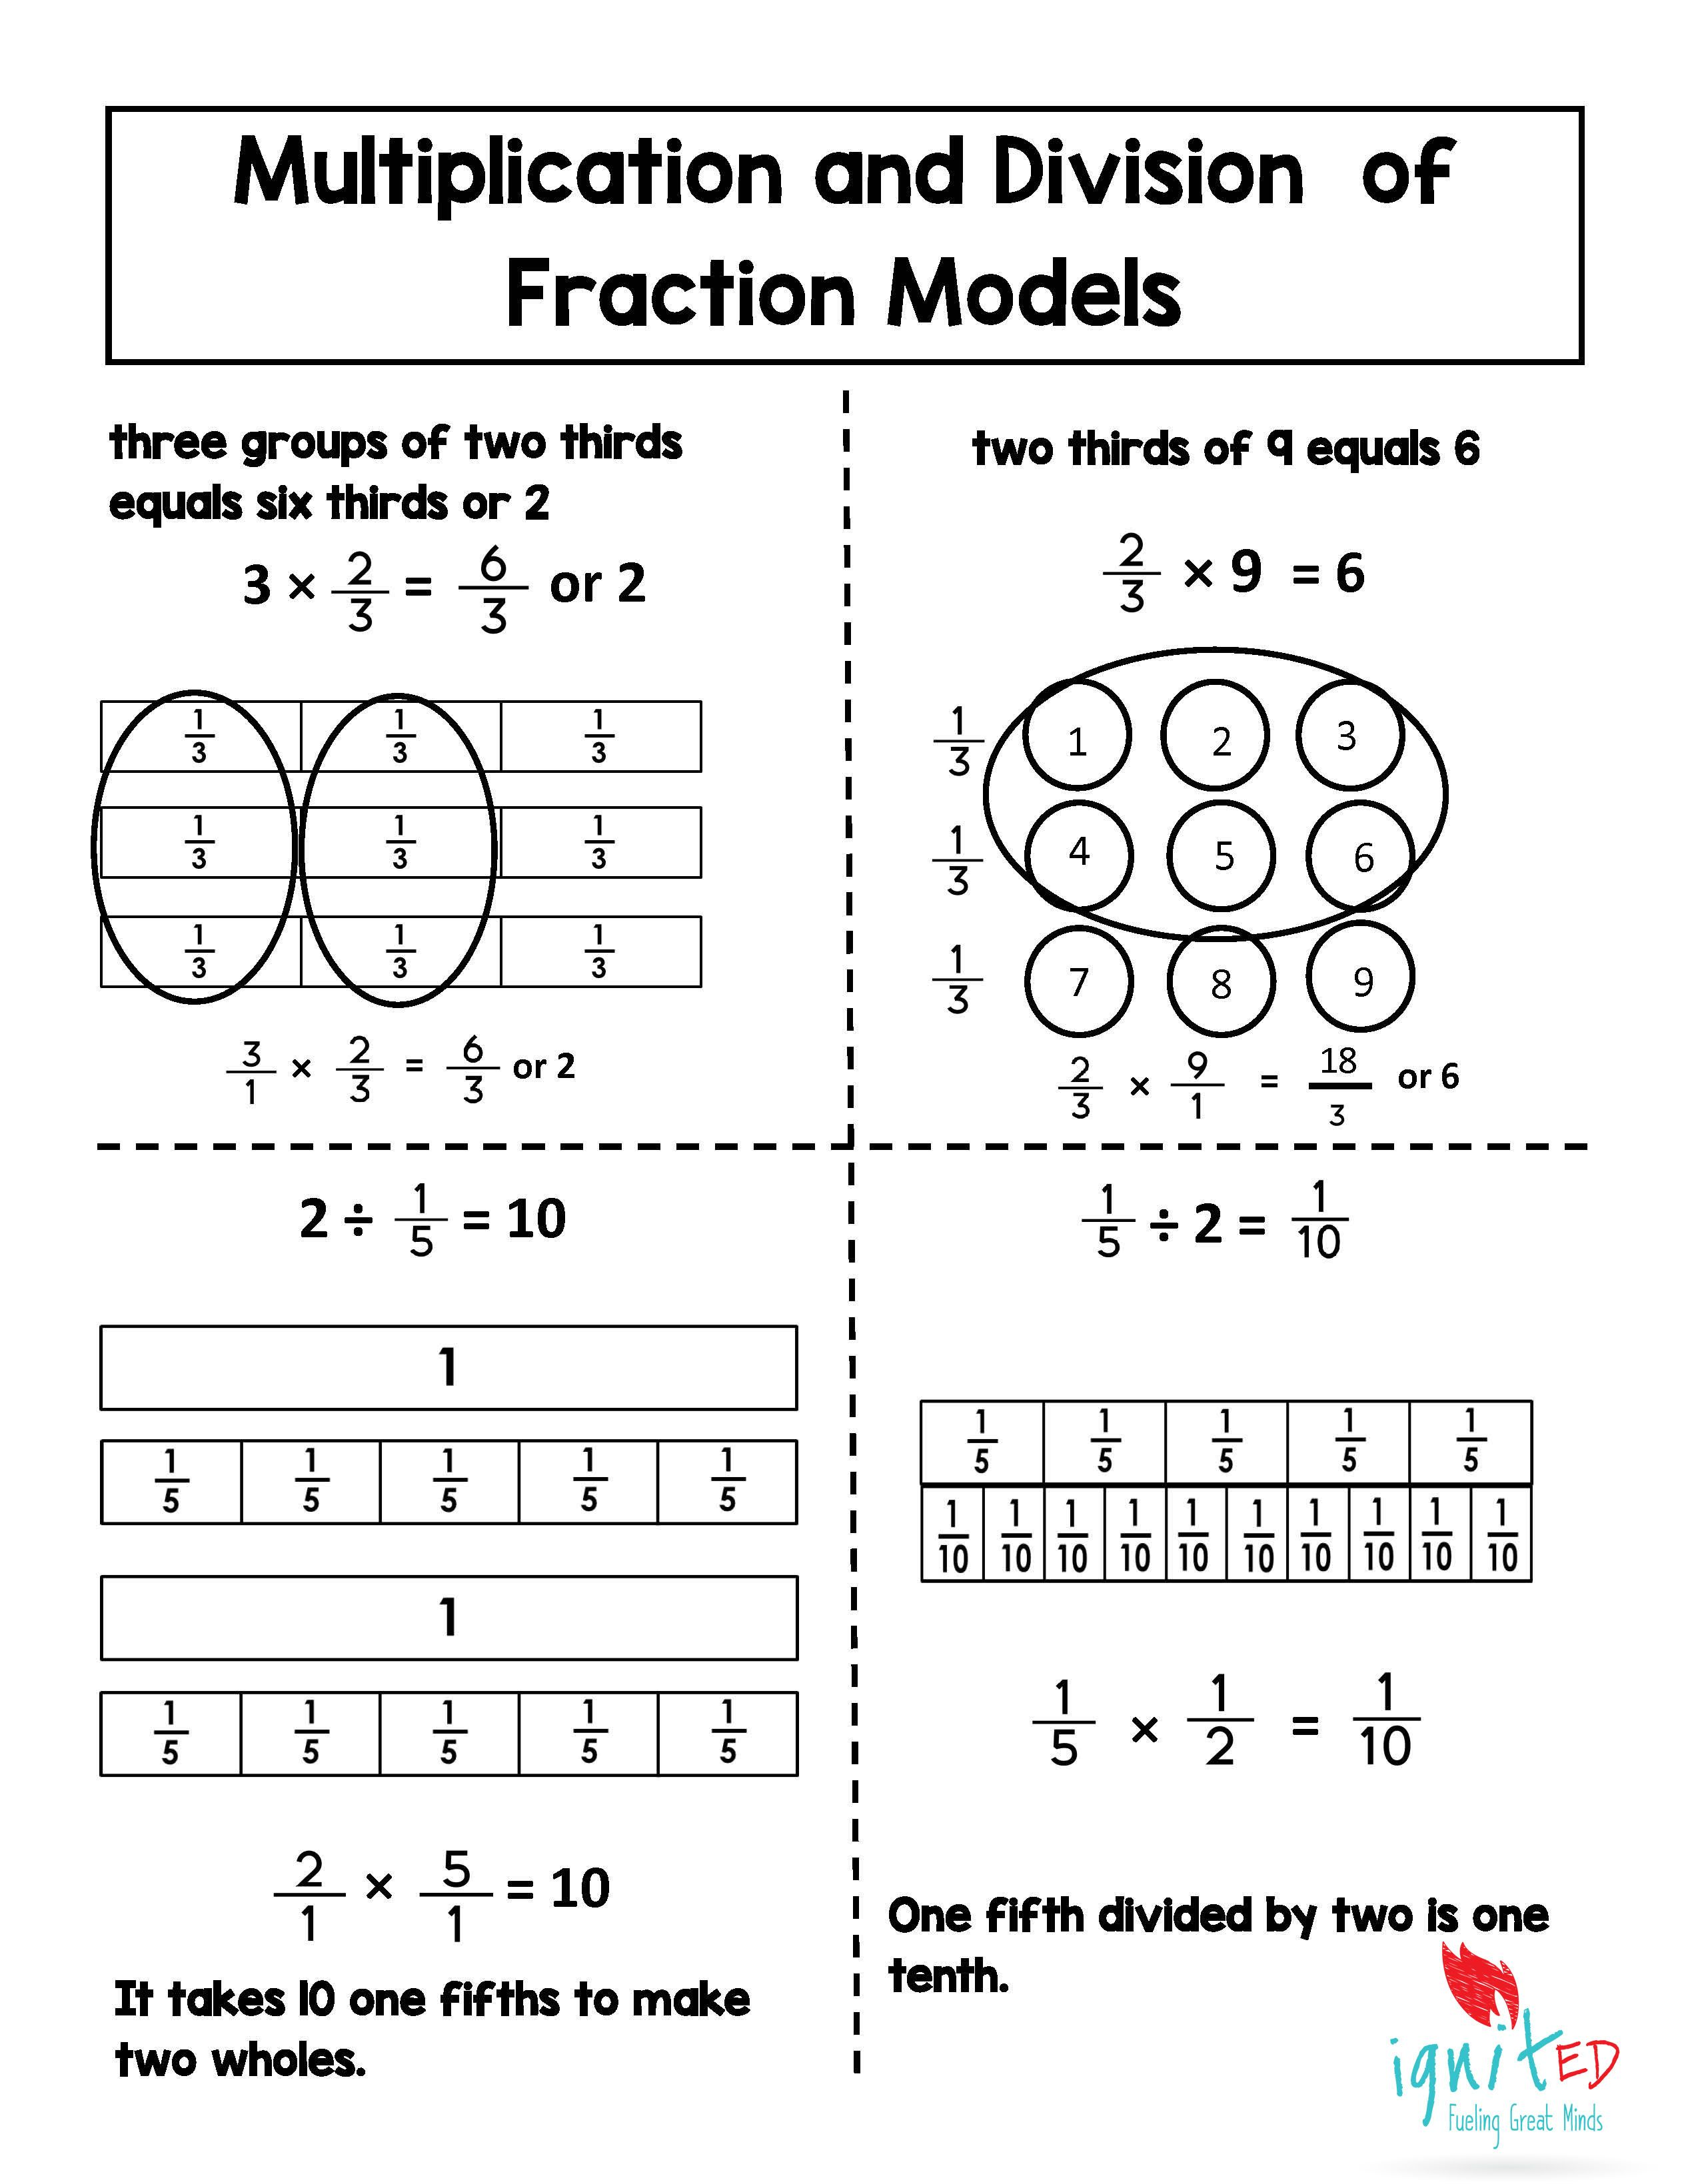 Multiplication And Division Model Of Fractions And Whole Numbers